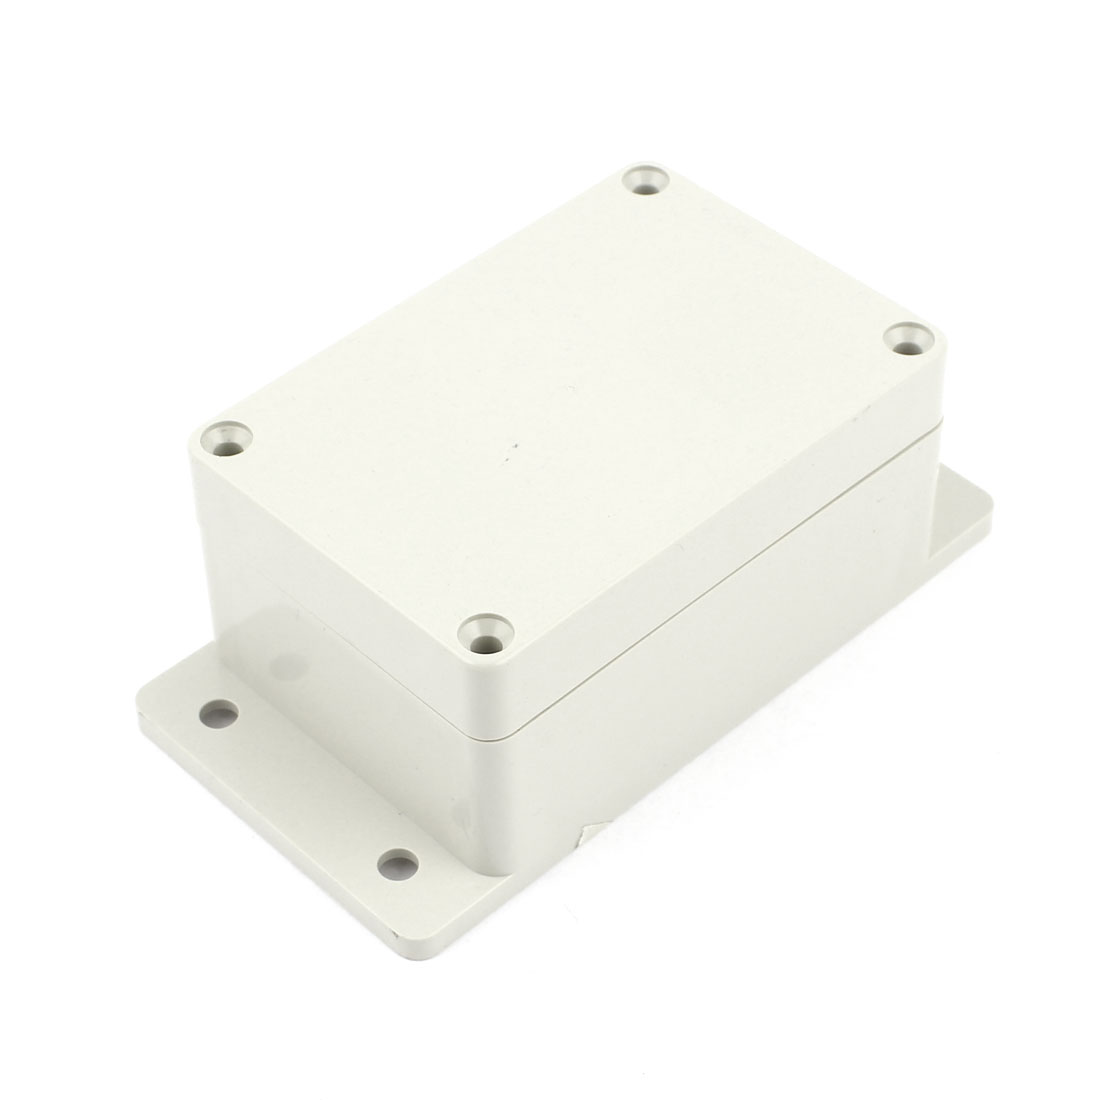 100mm x 68mm x 50mm Waterproof Plastic Sealed DIY Joint Electrical Junction Box